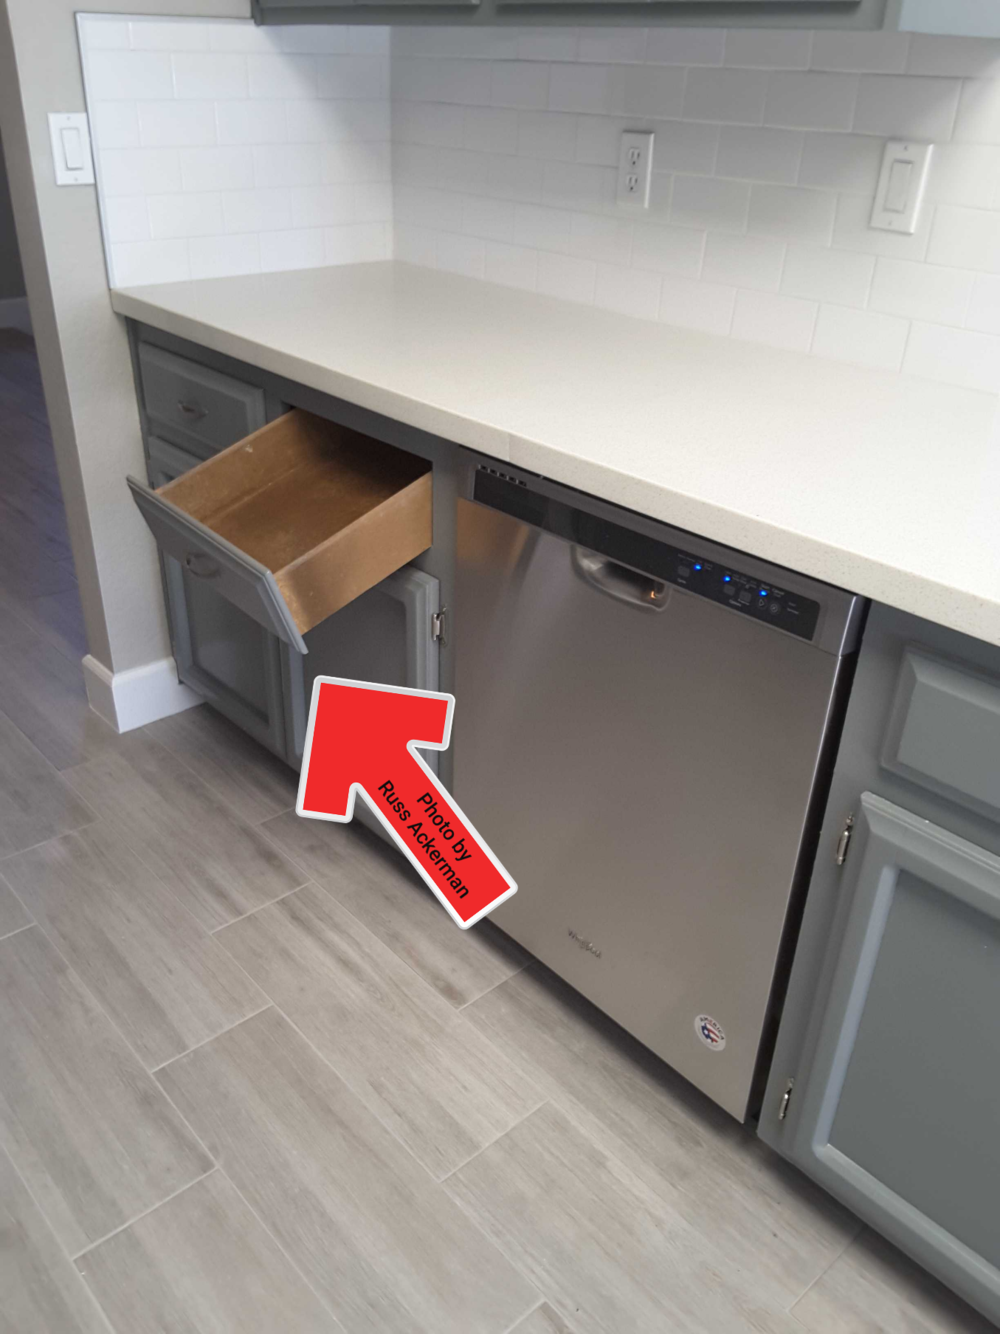 As your home inspector, I always test all kitchen and bathroom cabinets and drawers. There is usually at least one with missing or loose hardware.